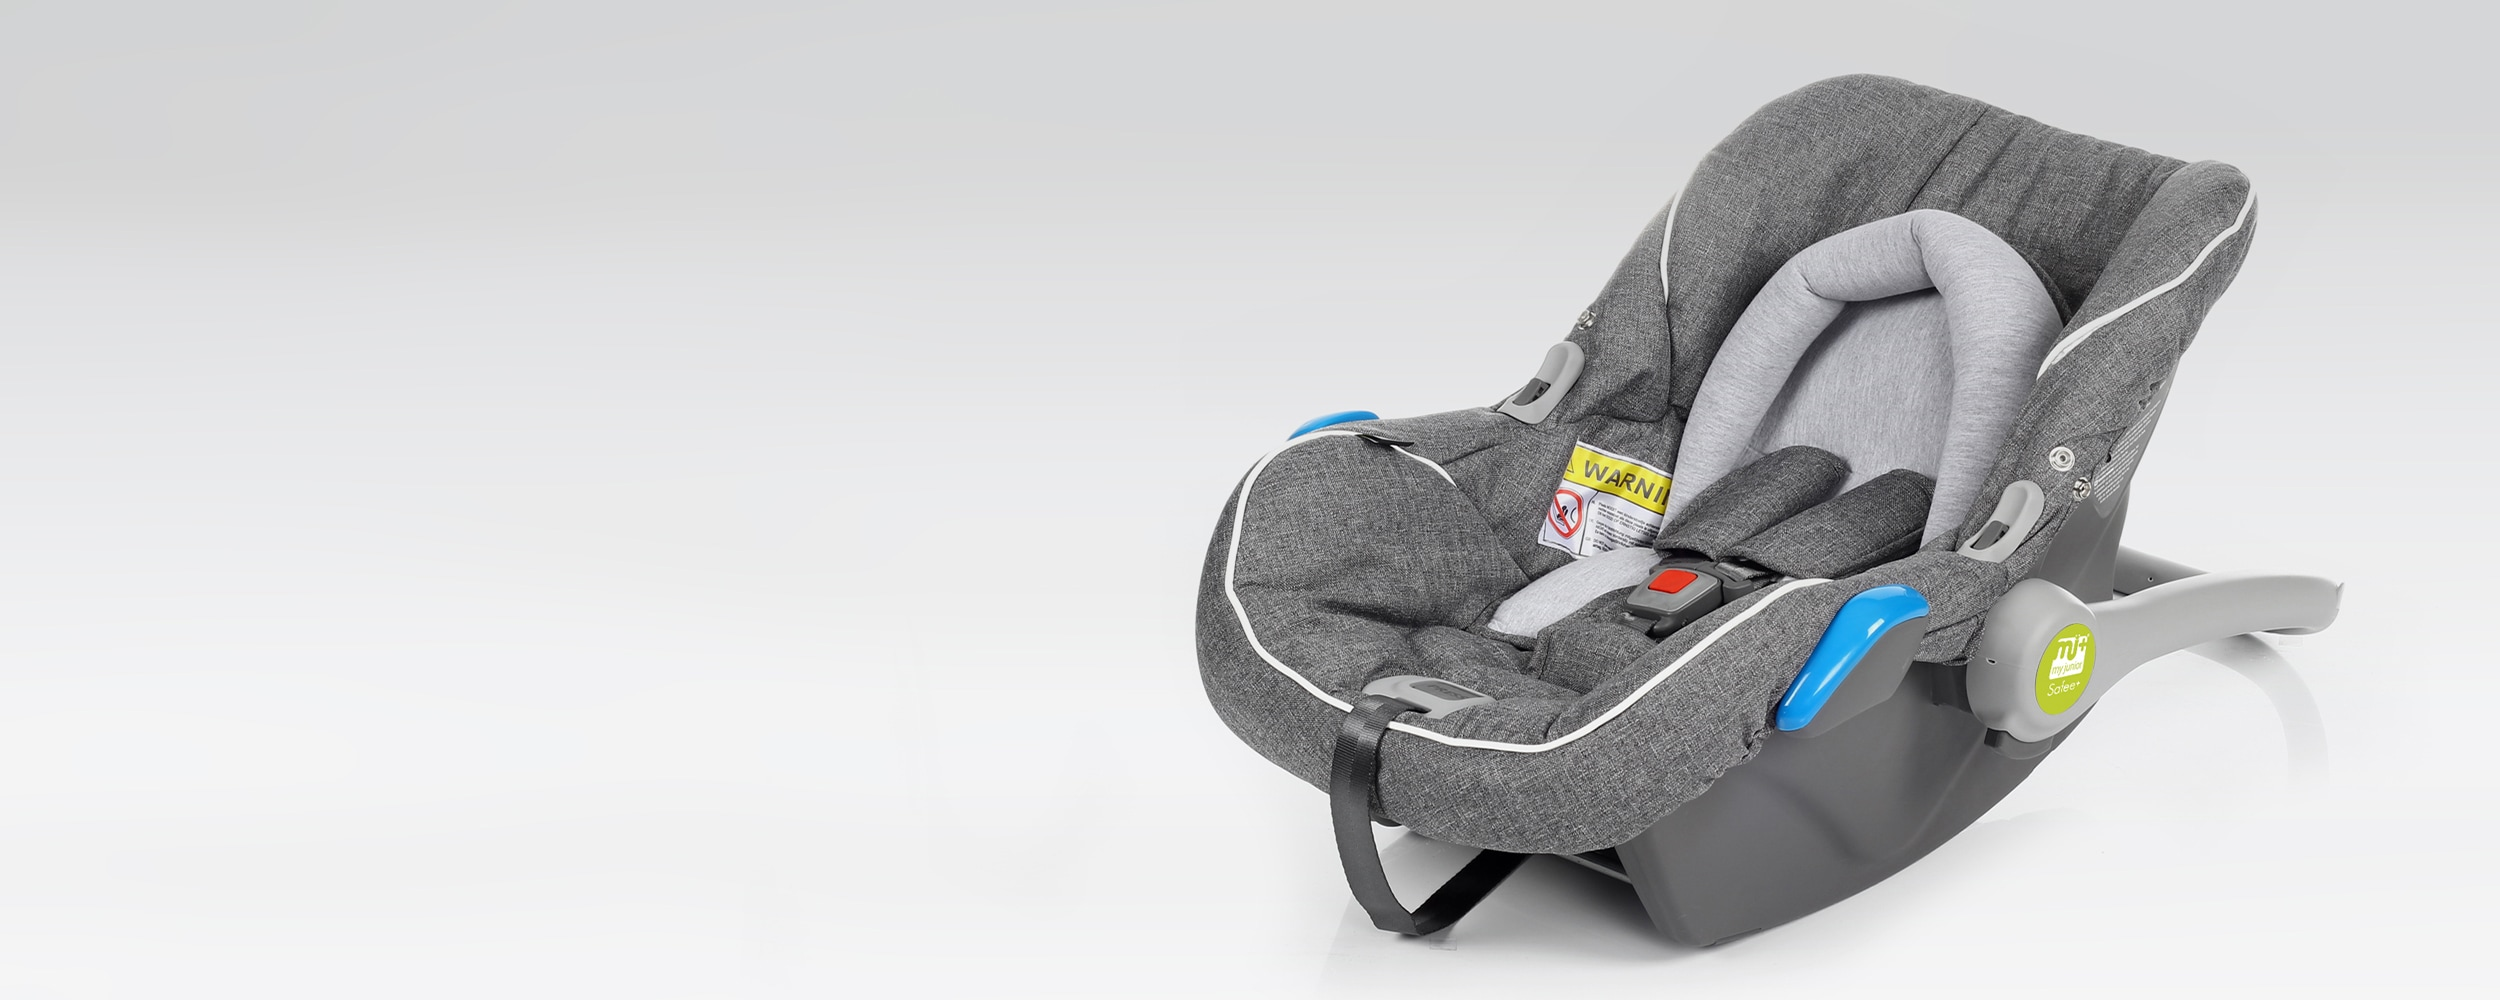 My Junior Kinderwagen Babyschale komfortable Leichtigkeit